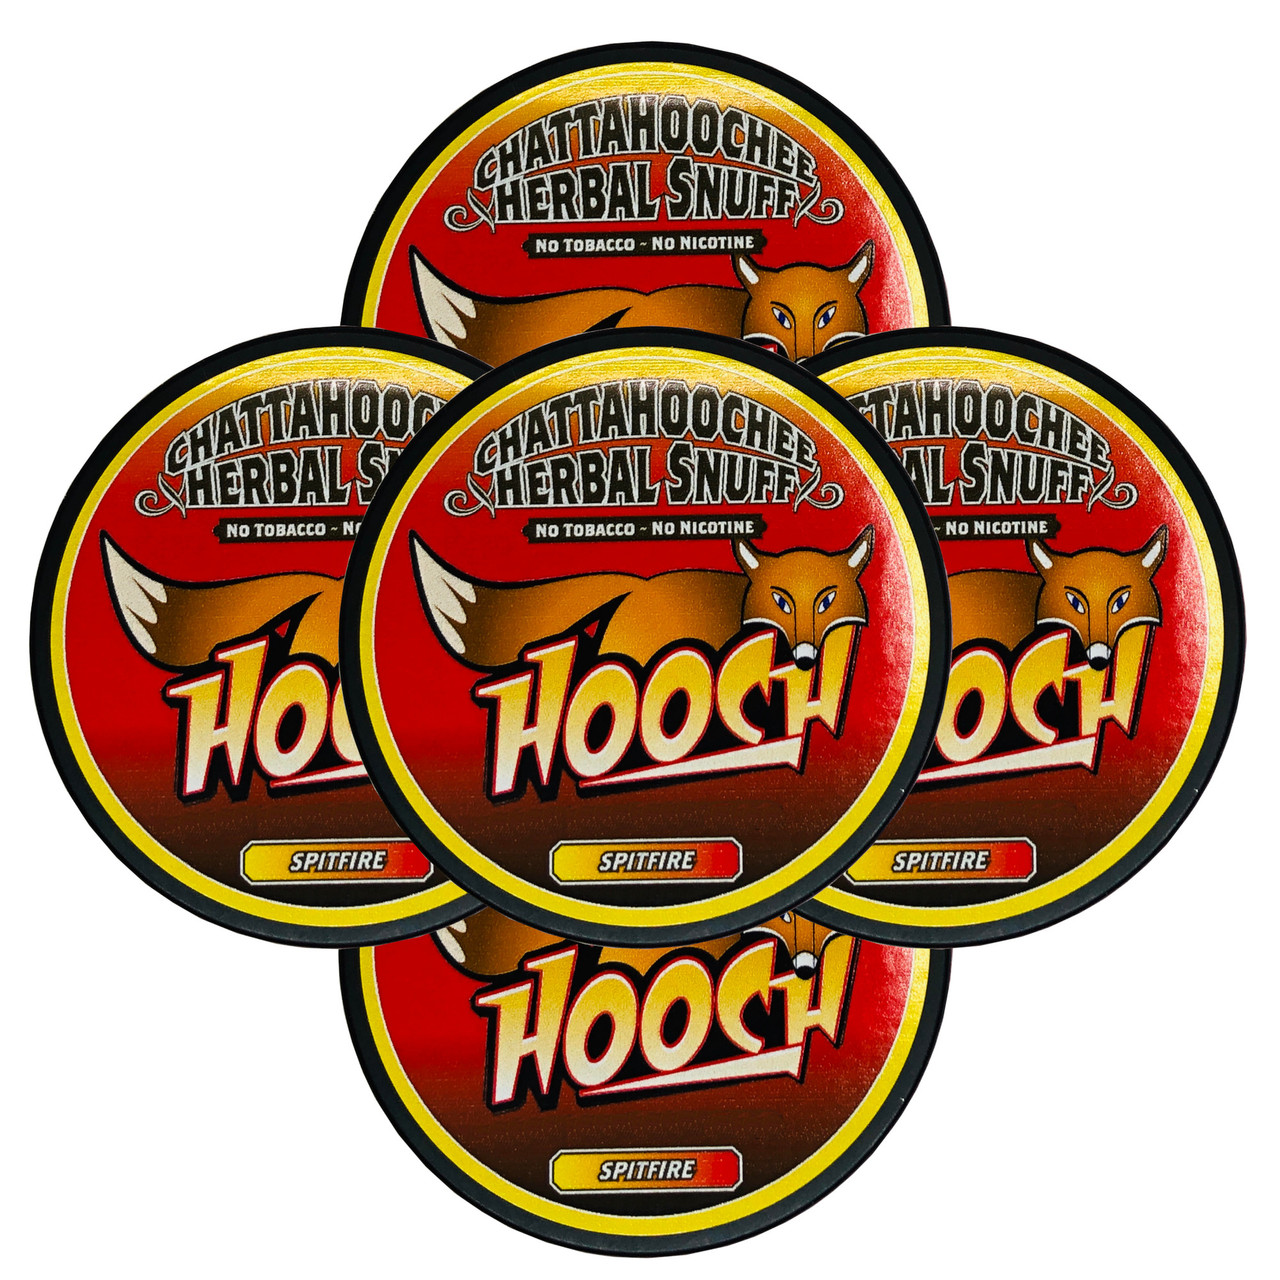 Hooch Snuff Pouch Packs 5 Cans Spitfire